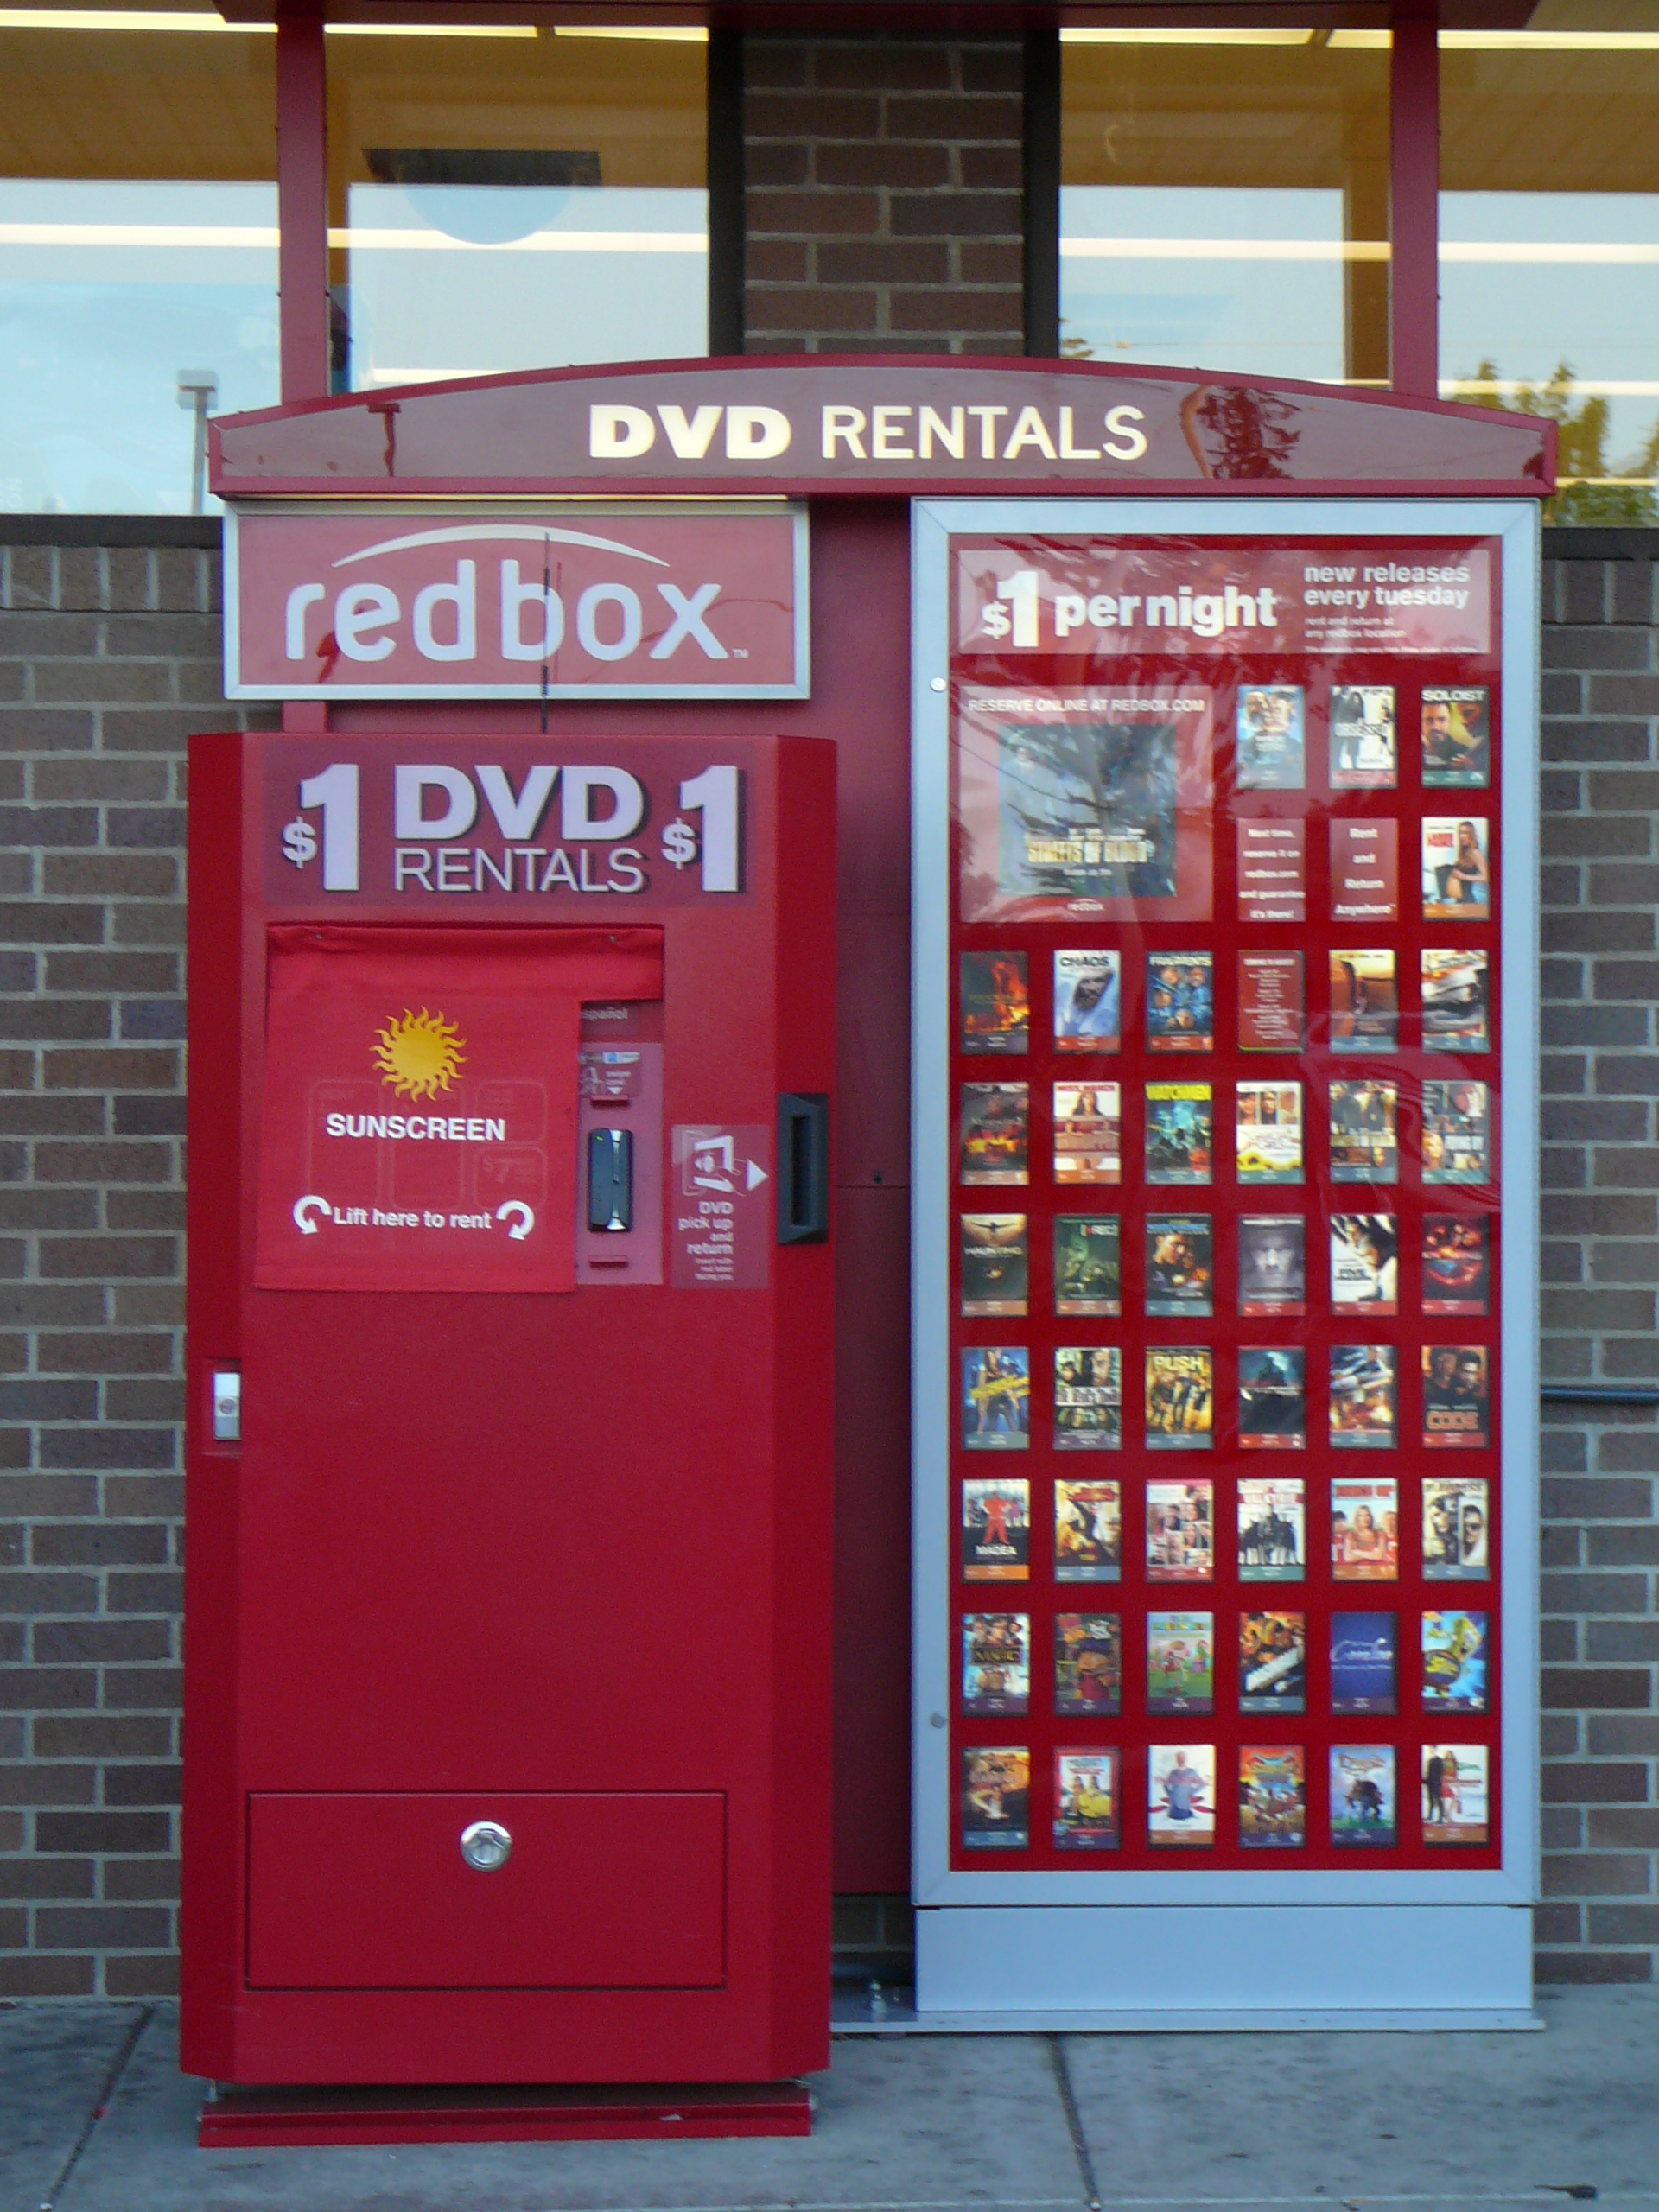 Redbox, the kiosk DVD rental service, not only lets you rent physical DVDs that you pick up and drop off at a kiosk, but it also has a collection of online movies and TV shows that you can stream right at home without needing a DVD. Netflix is the closest comparison to Redbox. With both, you can.